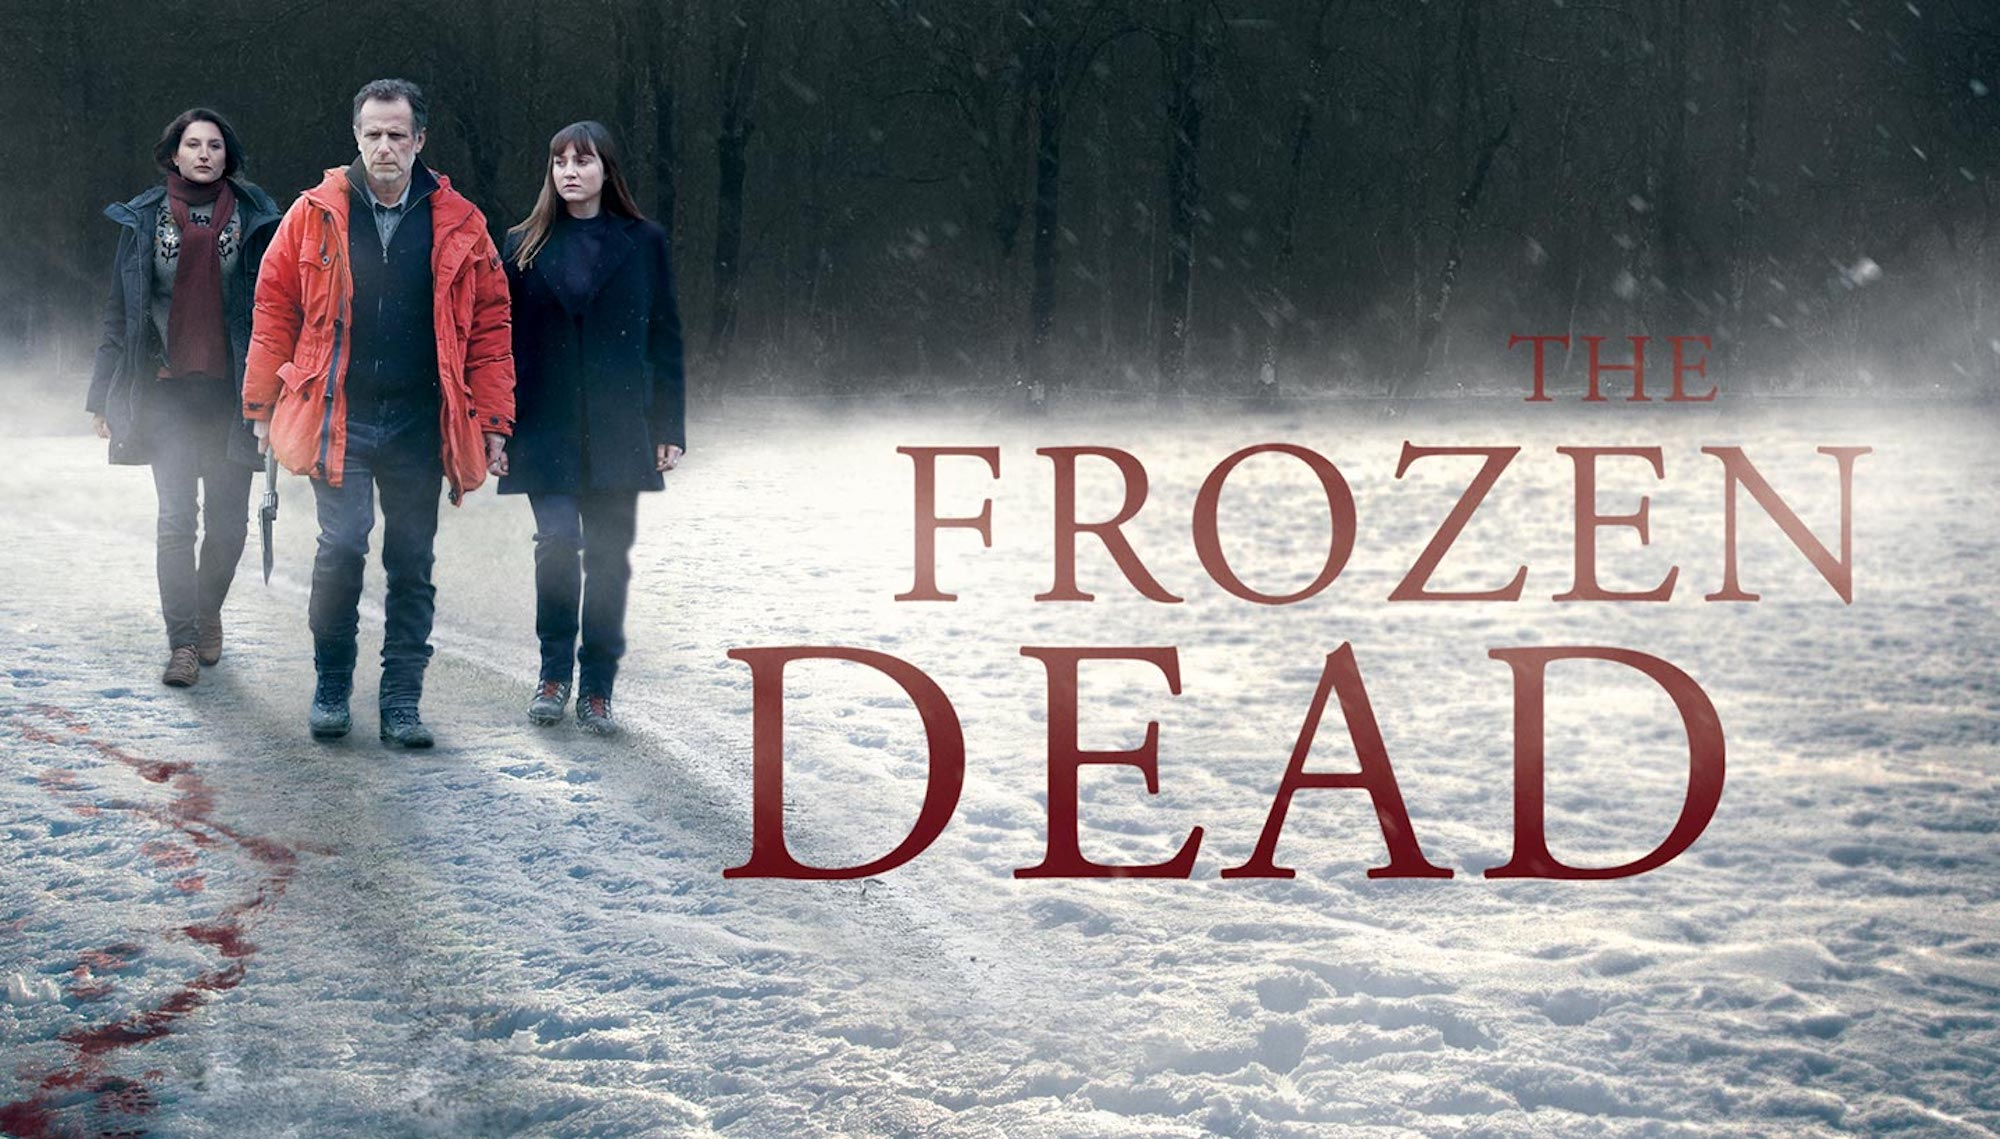 The poster for French Netflix series The Frozen Dead, with the three main characters walking in the snow following a trail of blood.